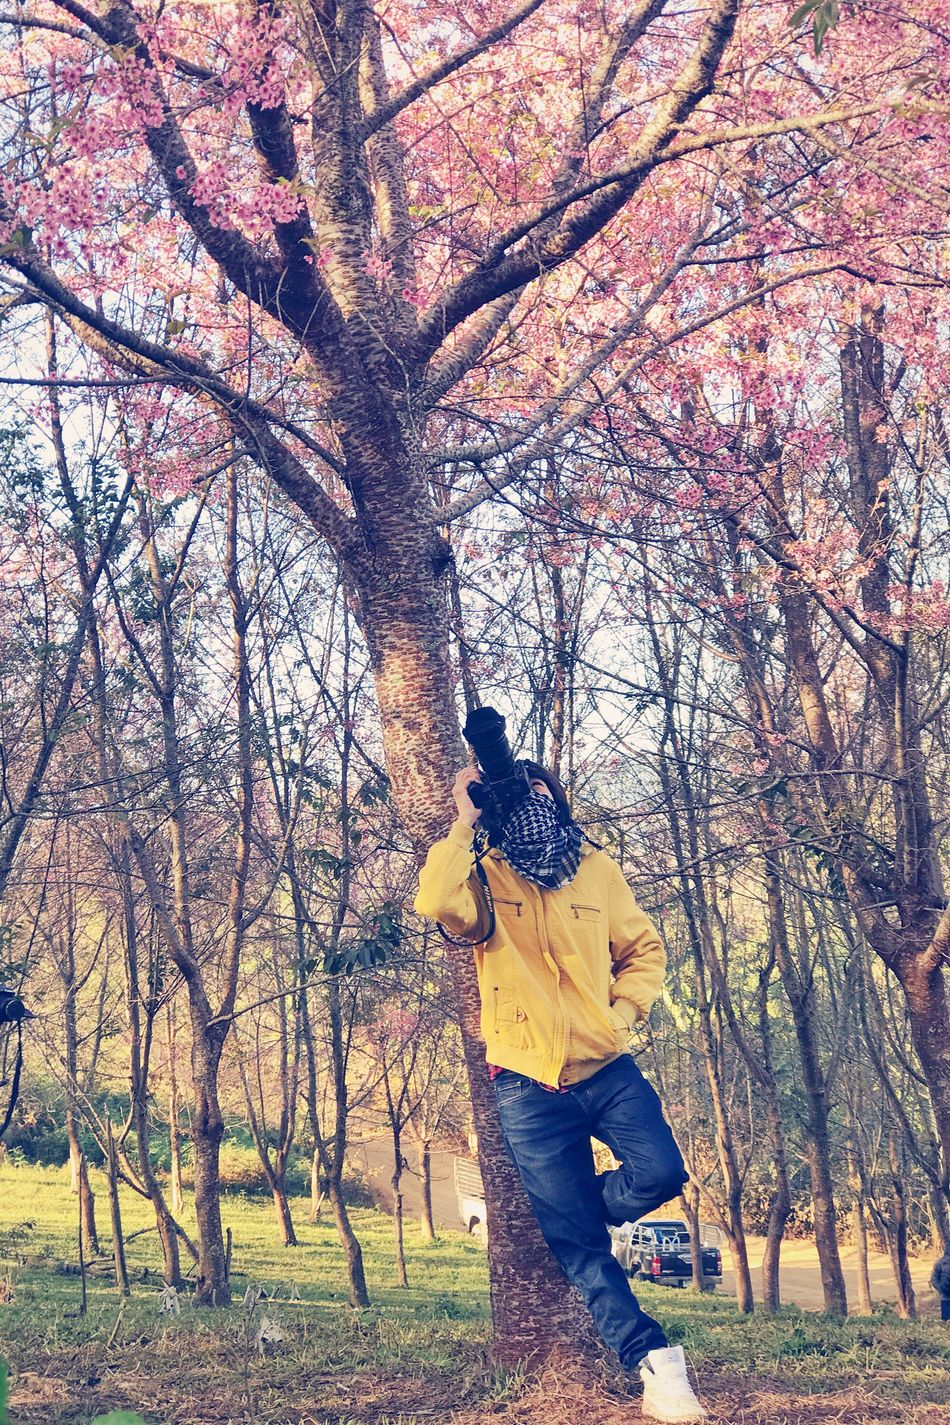 EyeEmNewHere Tree One Person Nature Tree Trunk Bare Tree Branch Outdoors Beauty In Nature Adult People Sakura Pink Cherry Blossoms Camera Taking Photos Photographer Travel Vintage Forest Thailand Blossom Winter Lifestyles Relaxing Miles Away Uniqueness Lieblingsteil